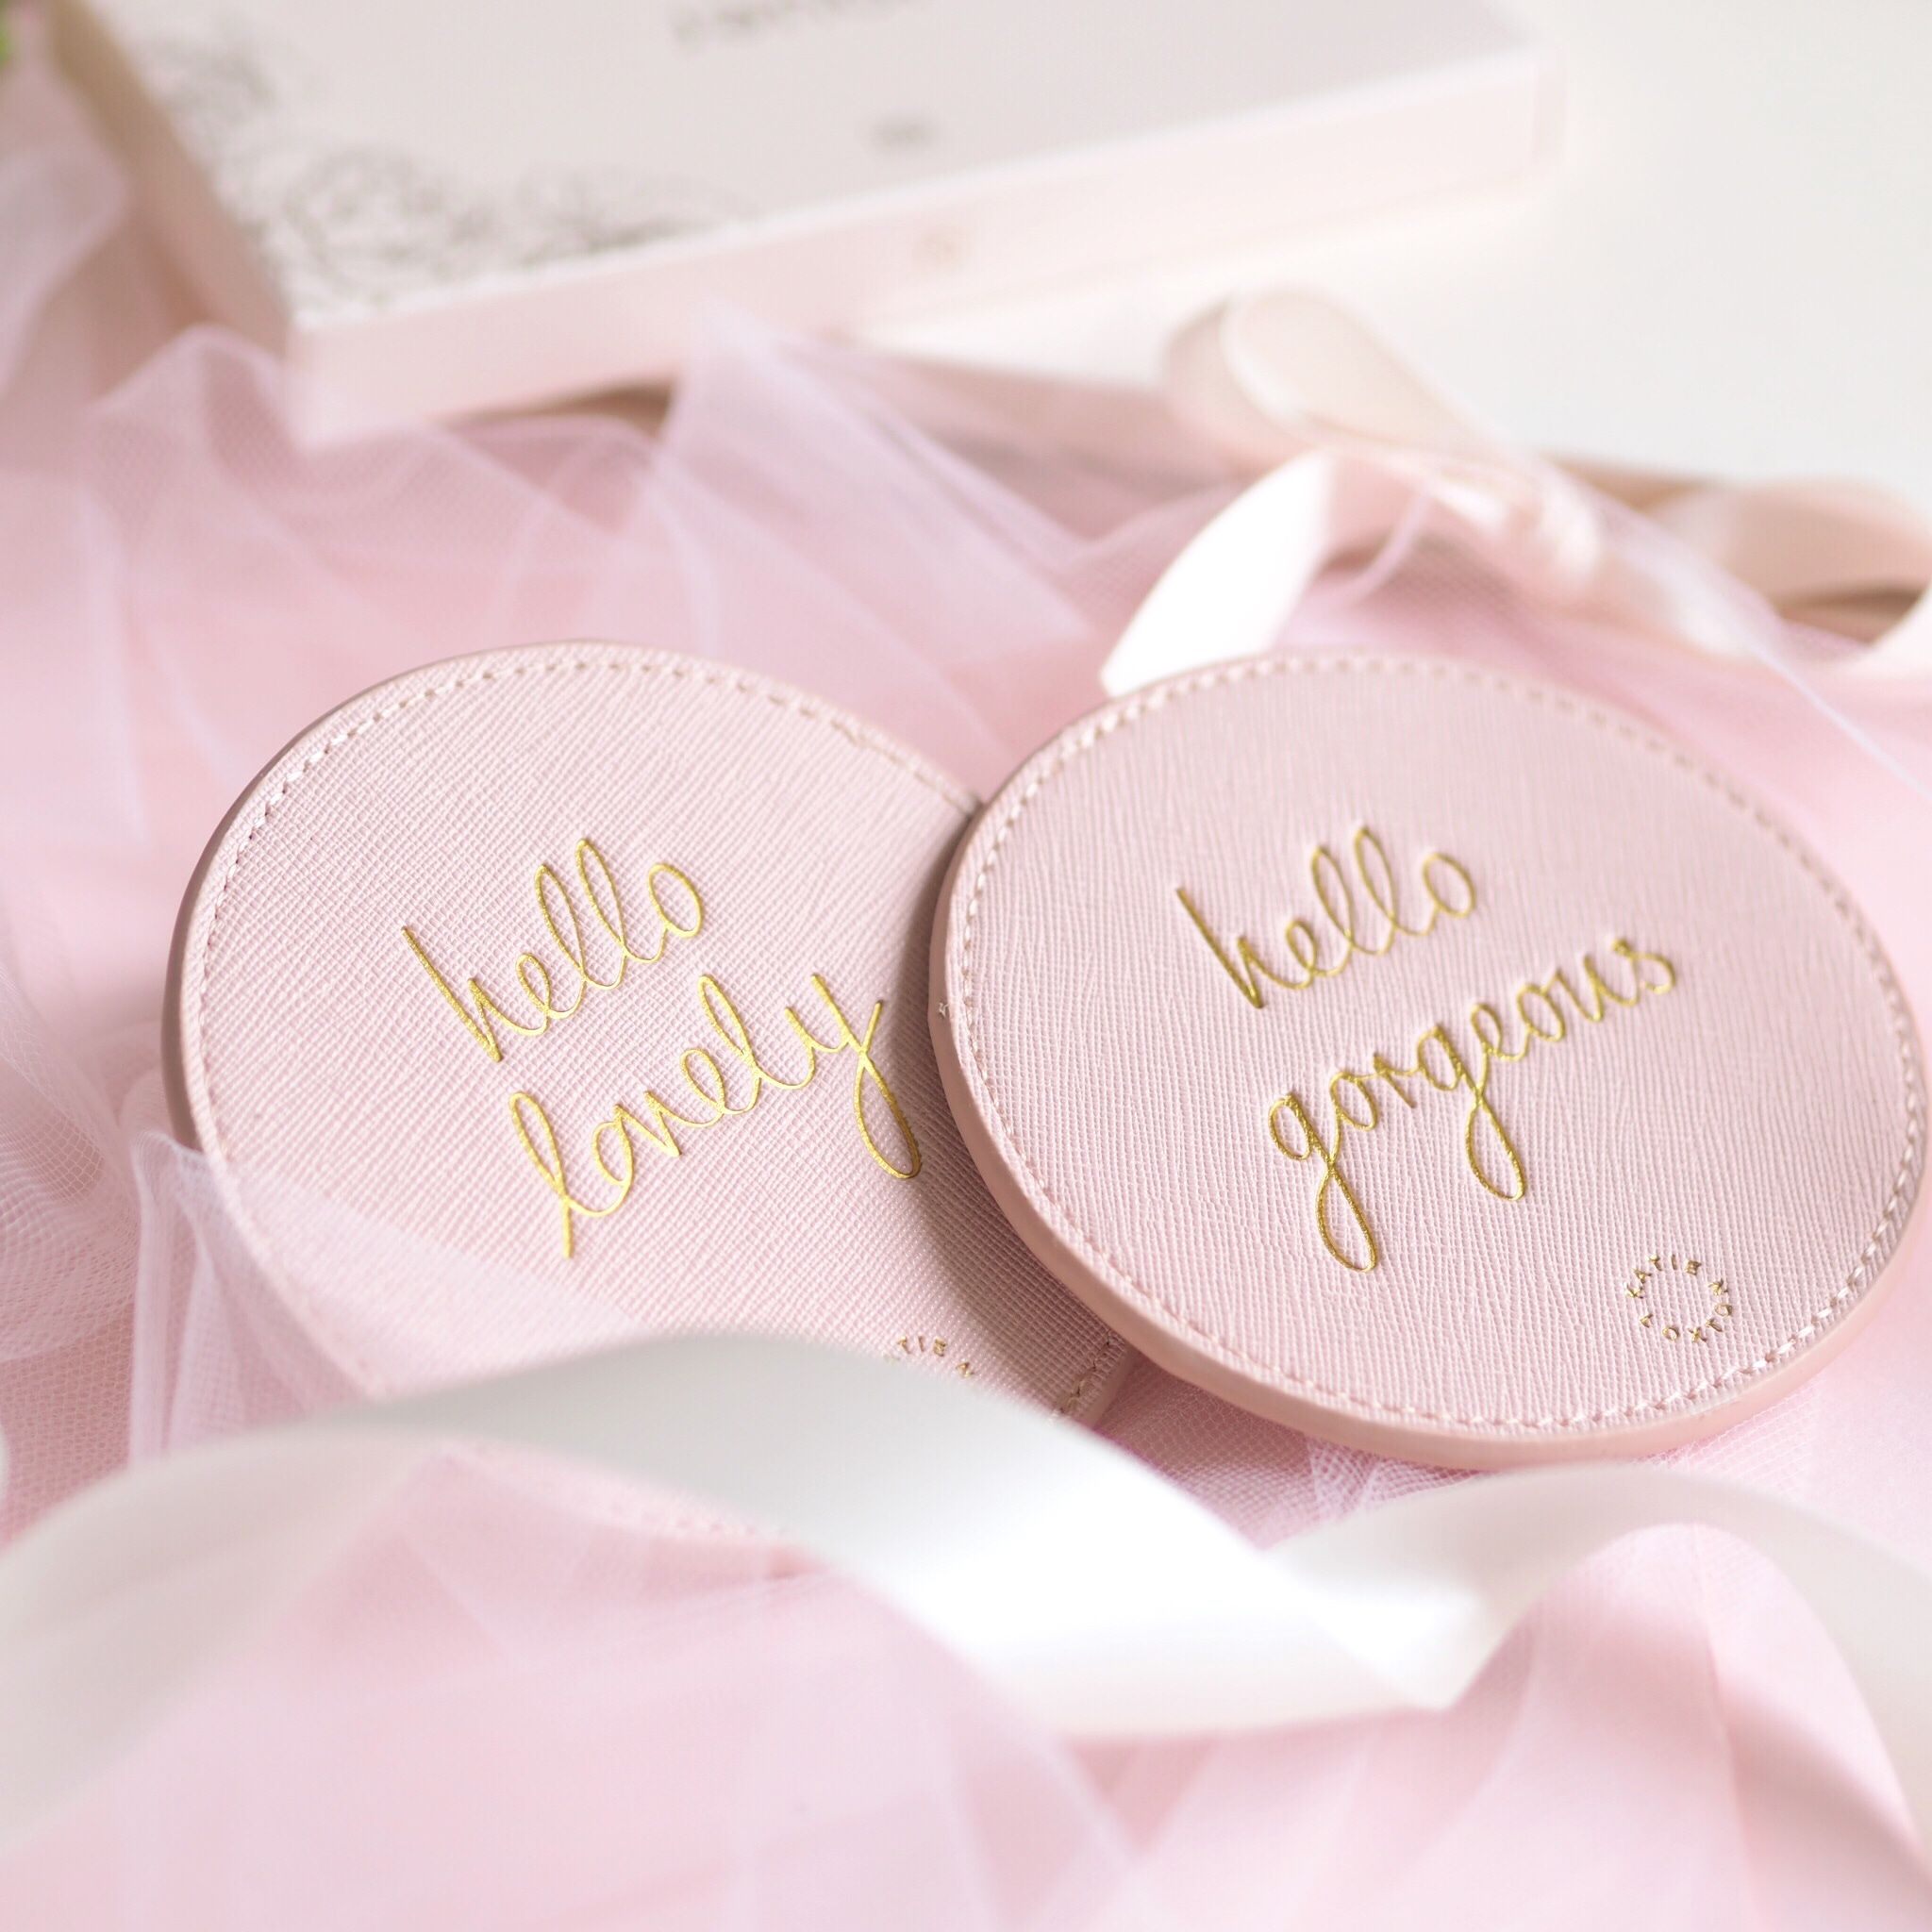 Special Gift Ideas For Mother's Day, Gift Guide, Katie Loxton Hello Lovely & Hello Gorgeous Coasters | Love Catherine